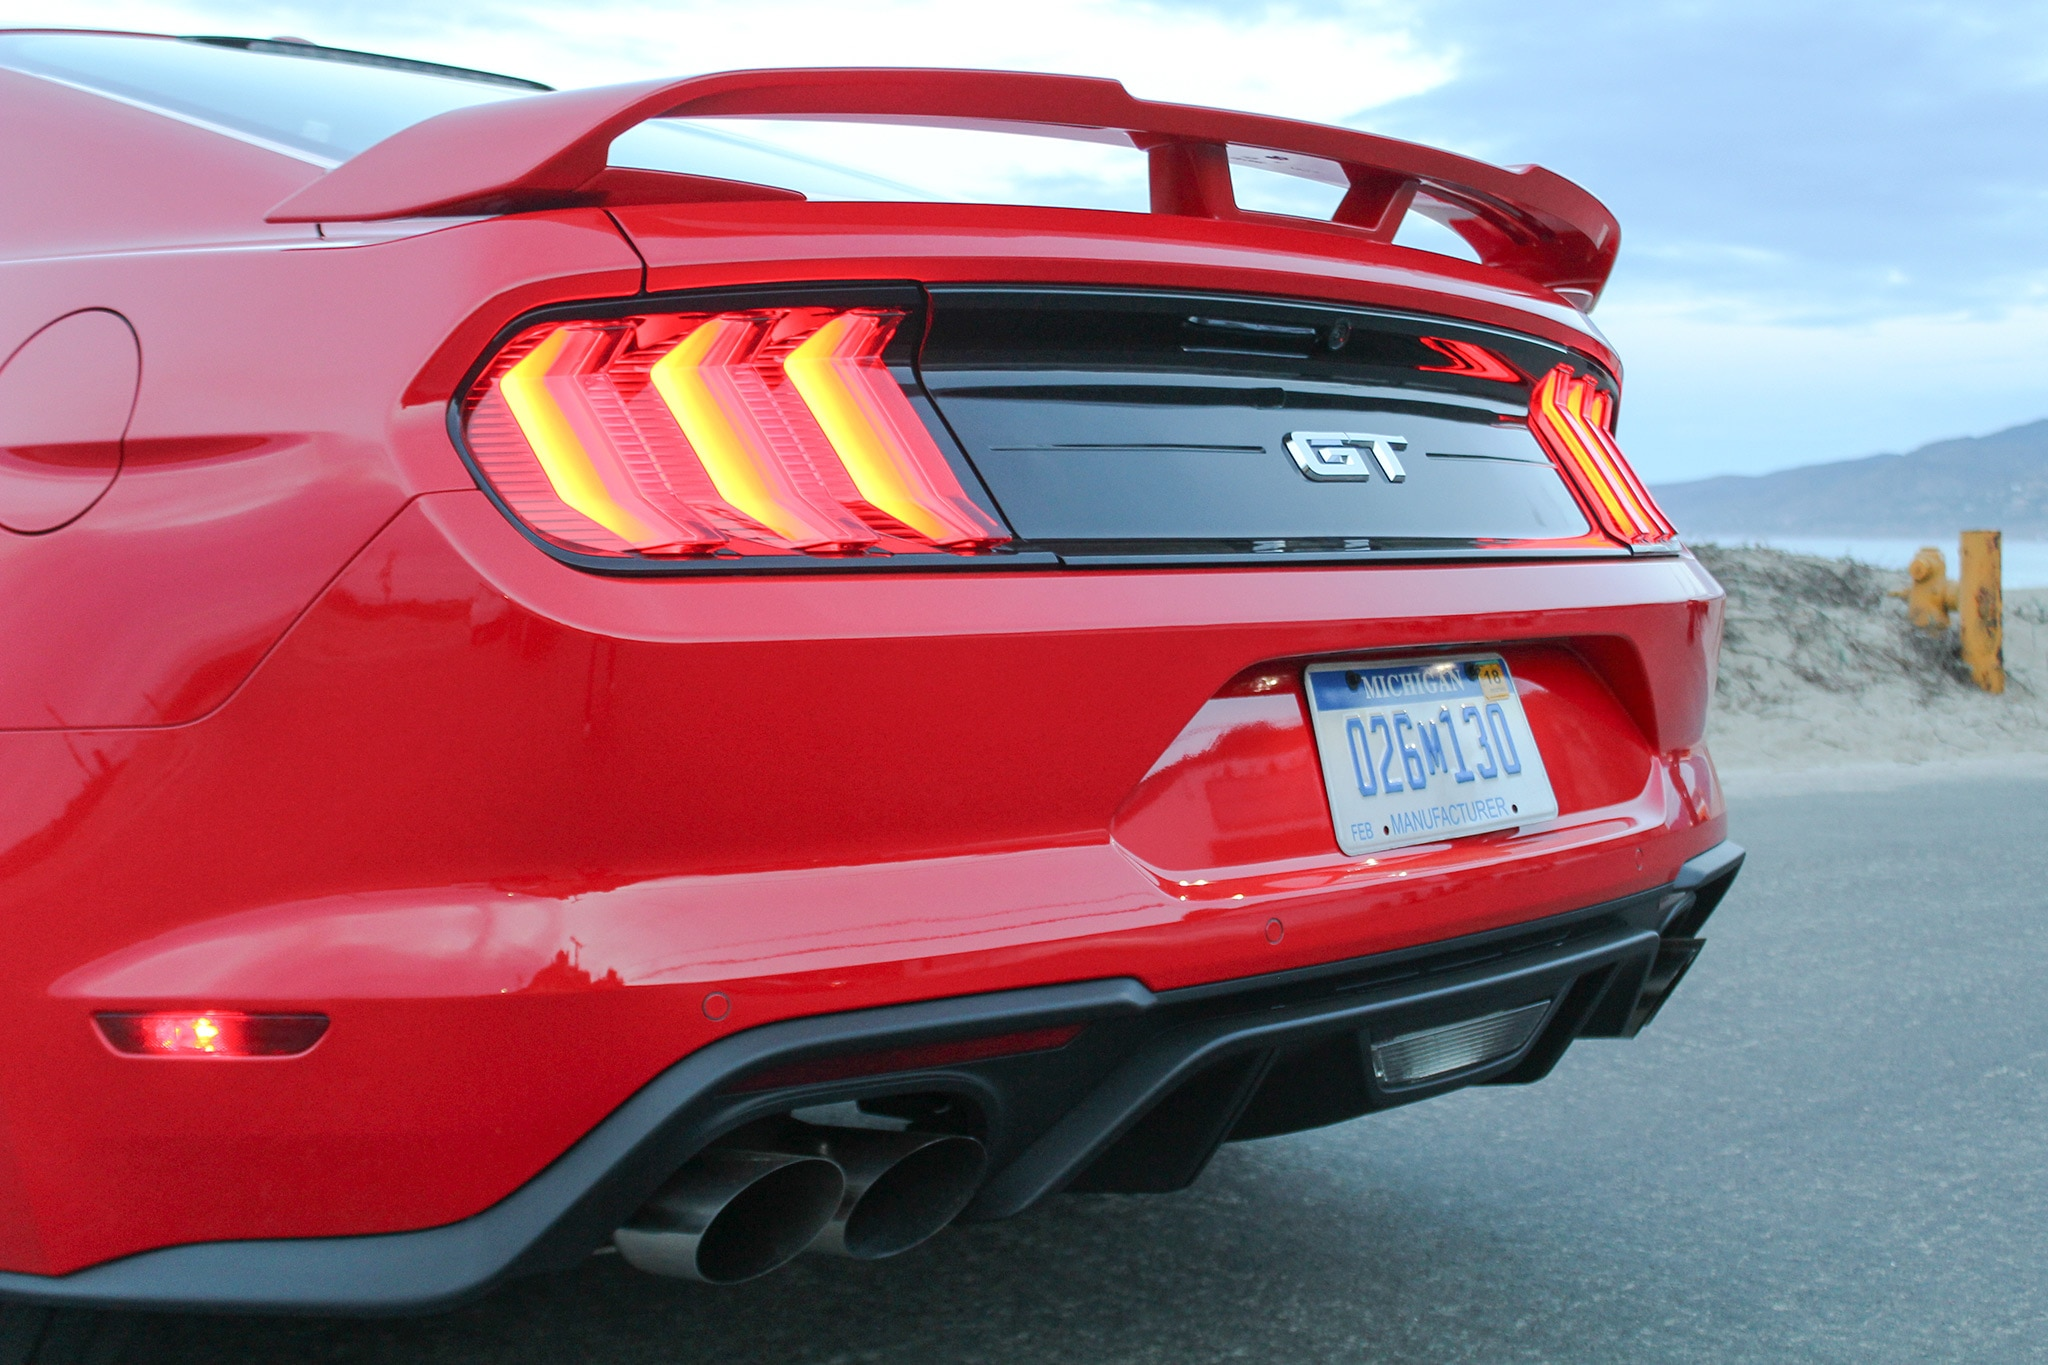 Mustang Gt 0 60 >> 2018 Ford Mustang GT Premium First Drive Review | Automobile Magazine